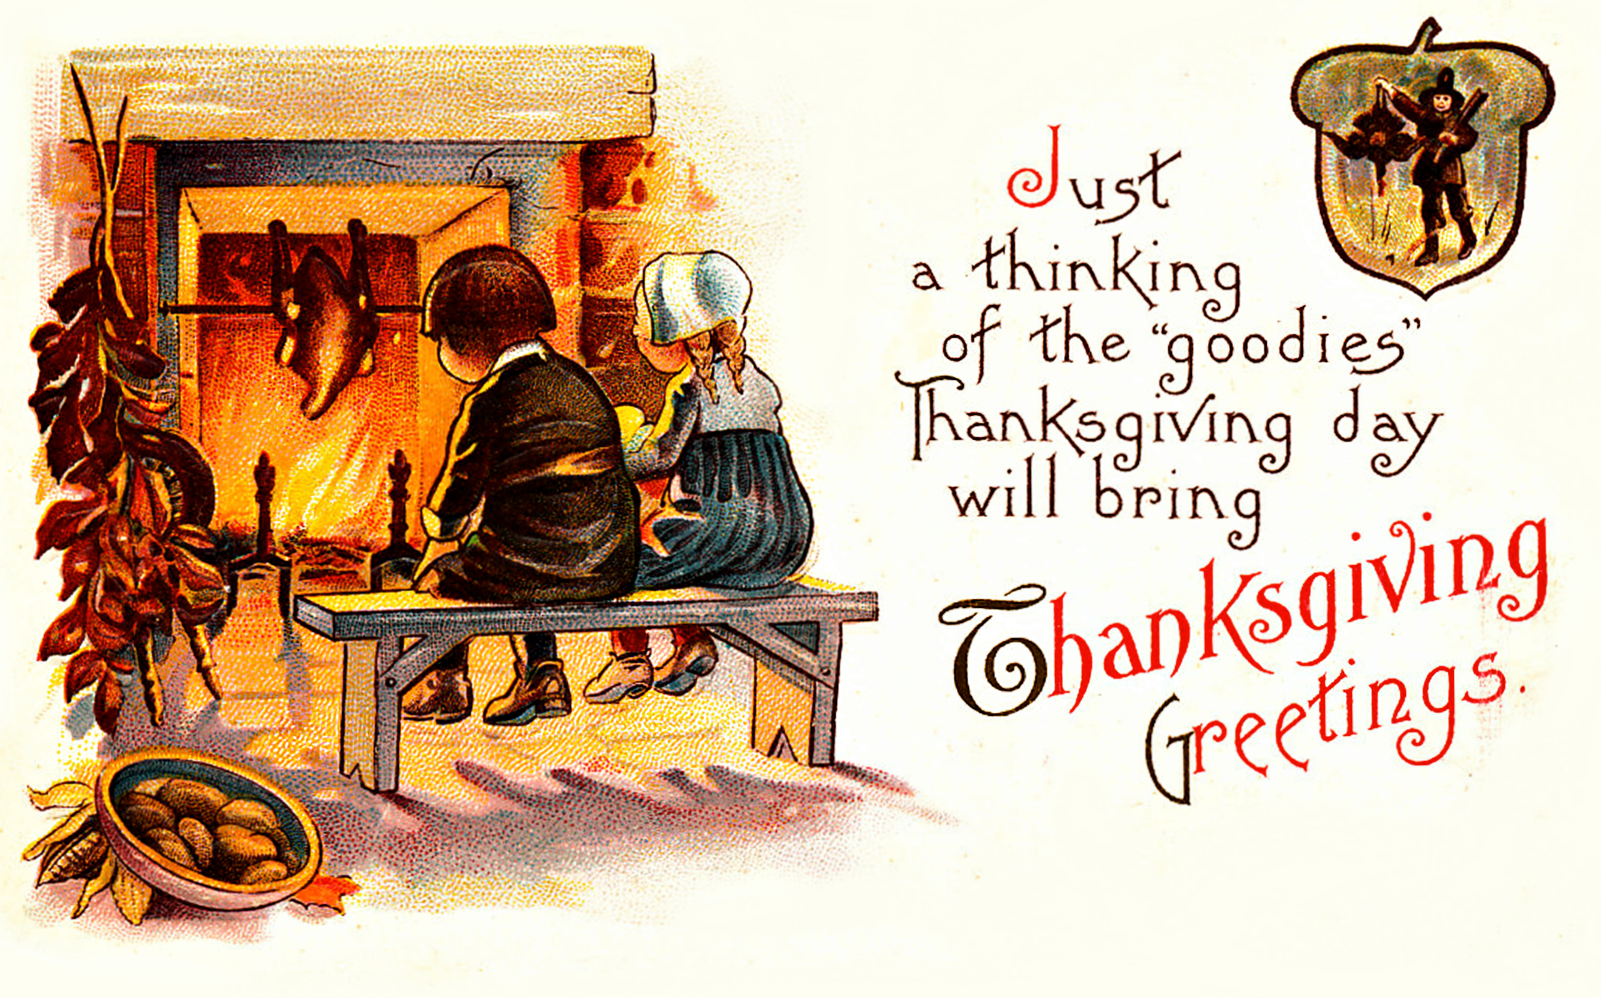 Fireplace clipart old fashioned Fireplace Free Fireplace Graphic Thanksgiving